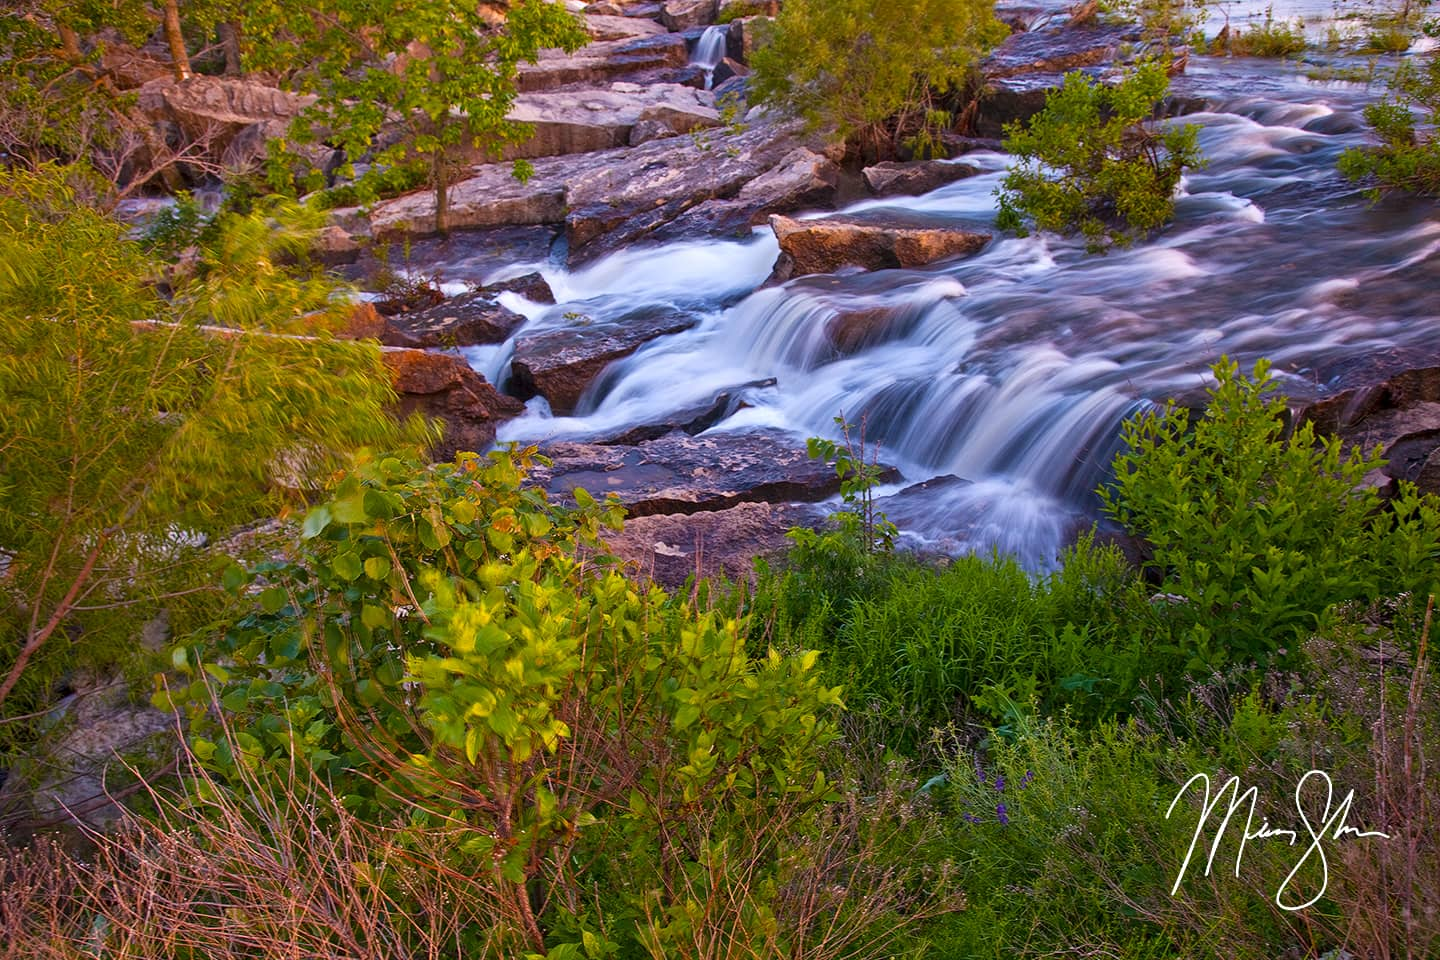 Open edition fine art print of Cascades at Lake Kahola from Mickey Shannon Photography. Location: Lake Kahola, Kansas